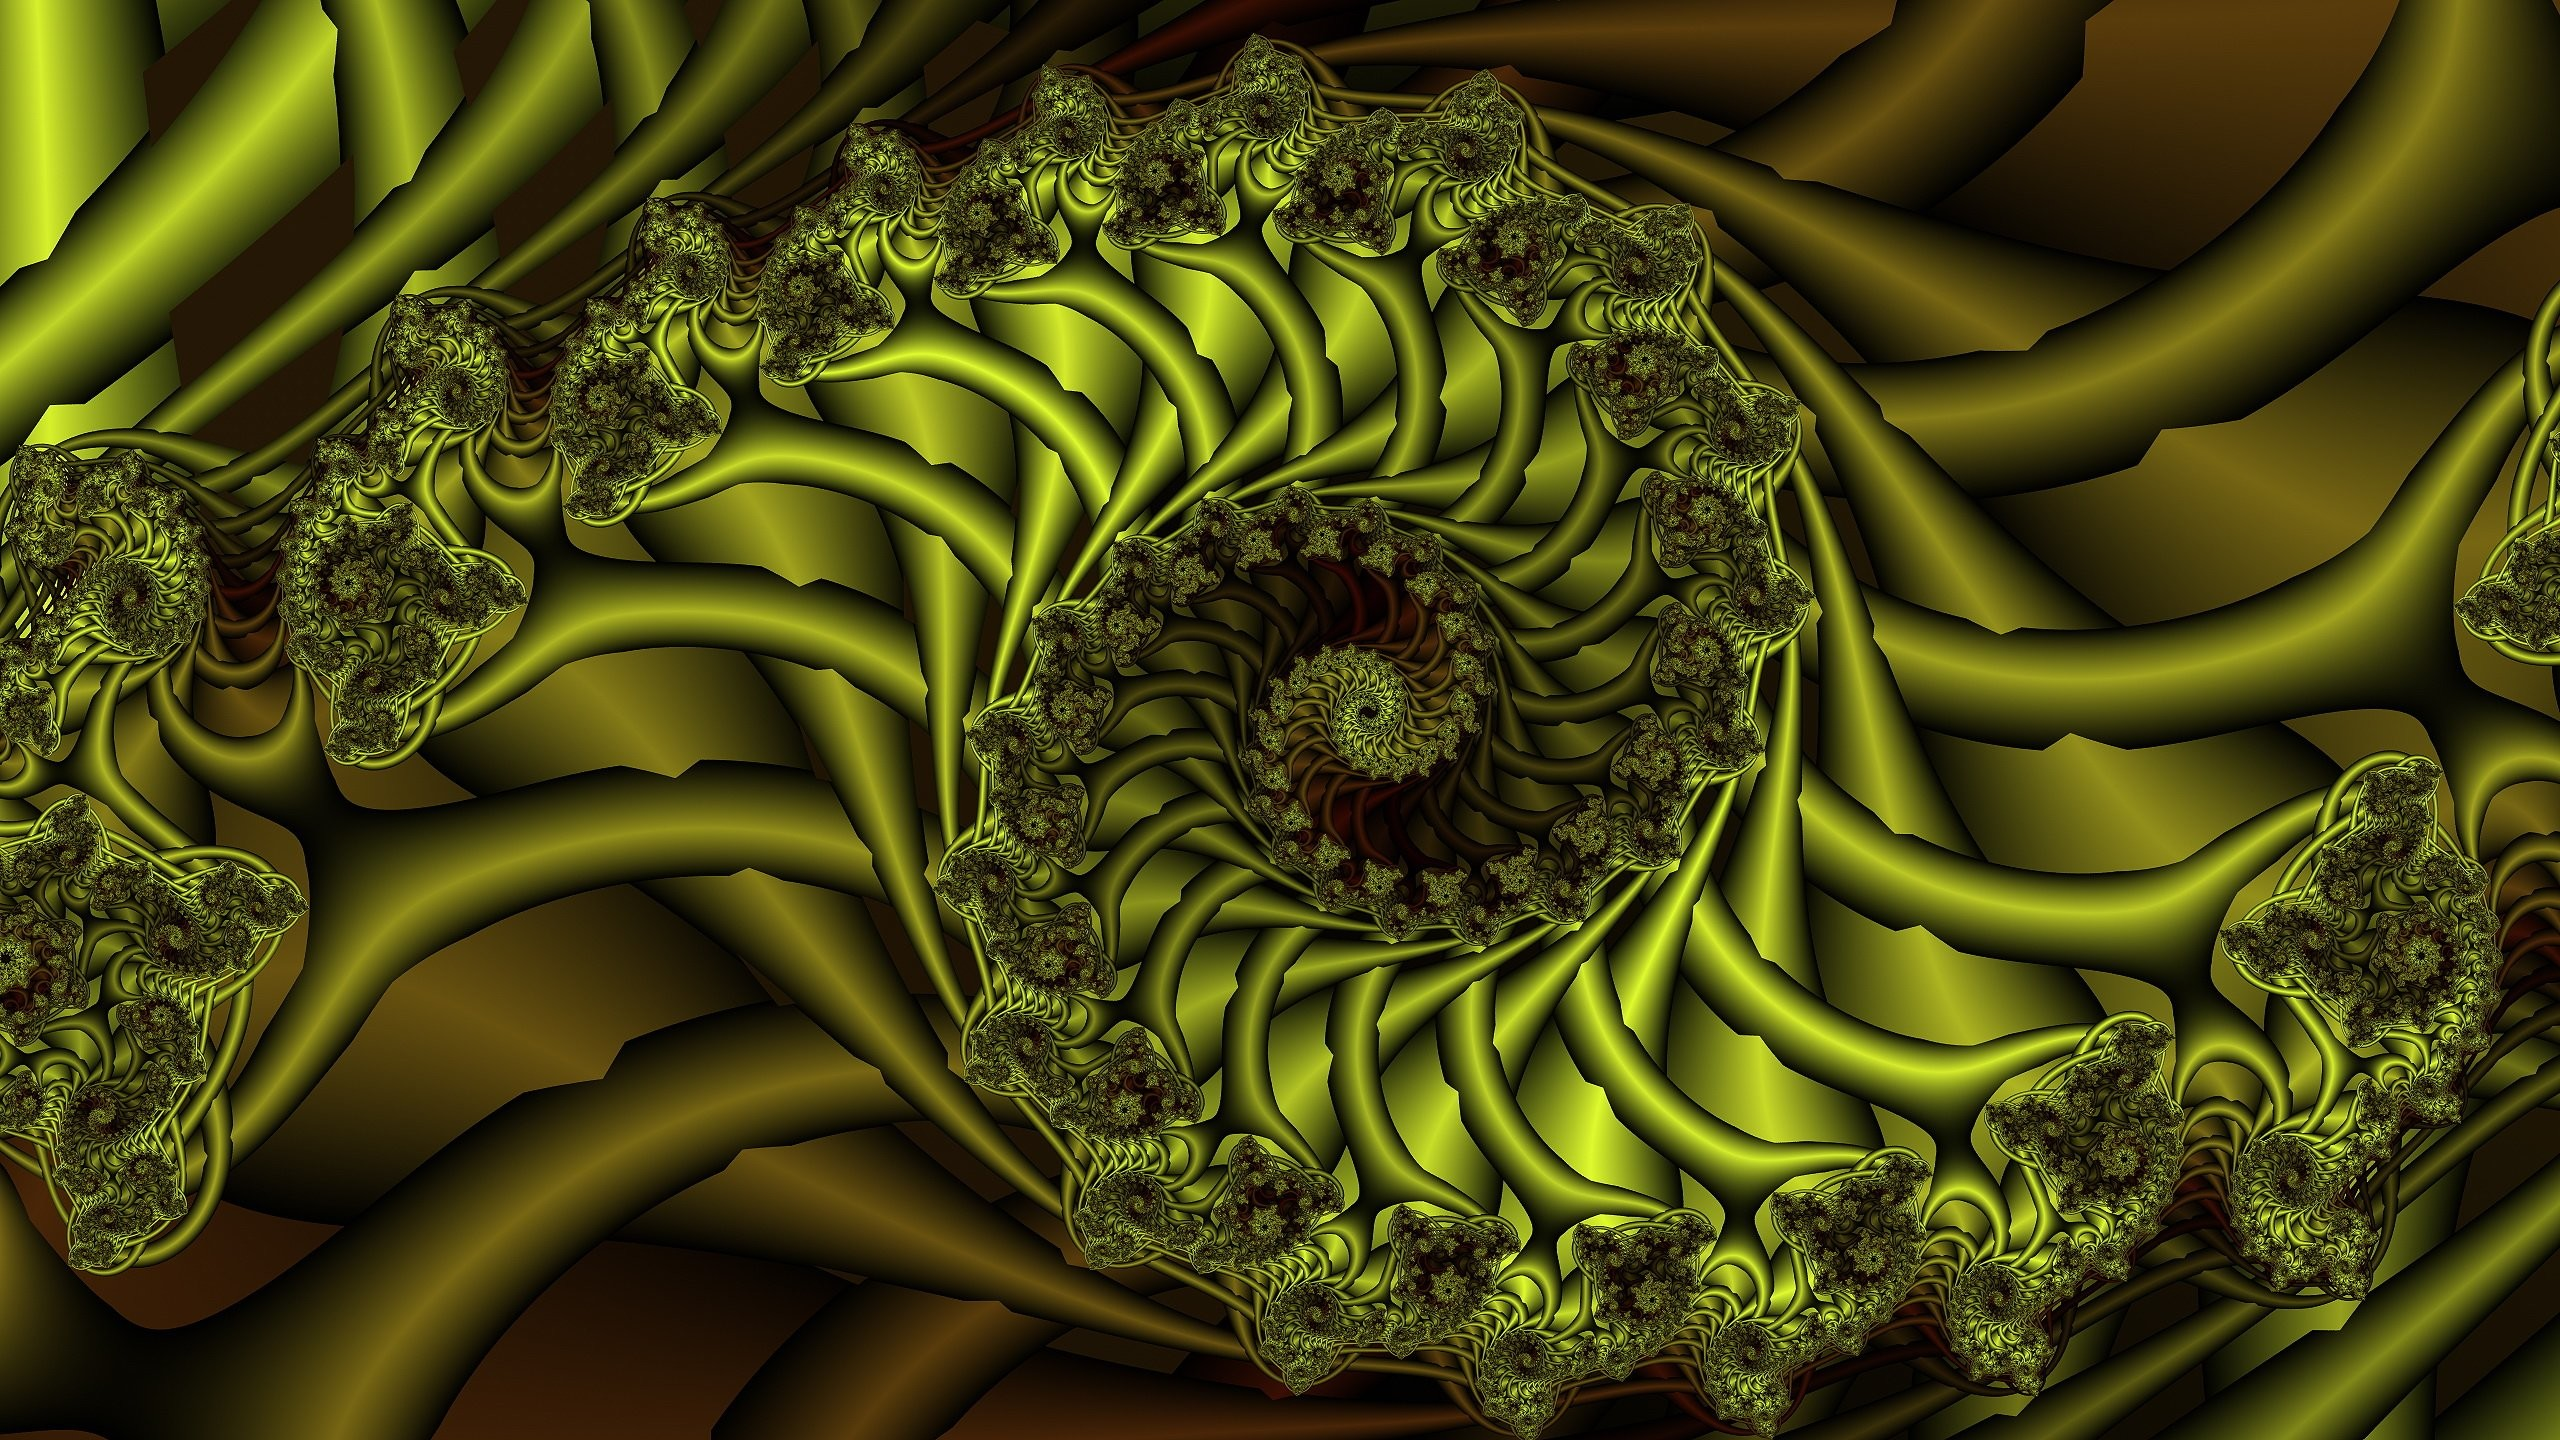 Hypnosis Moving Wallpaper (67+ images)